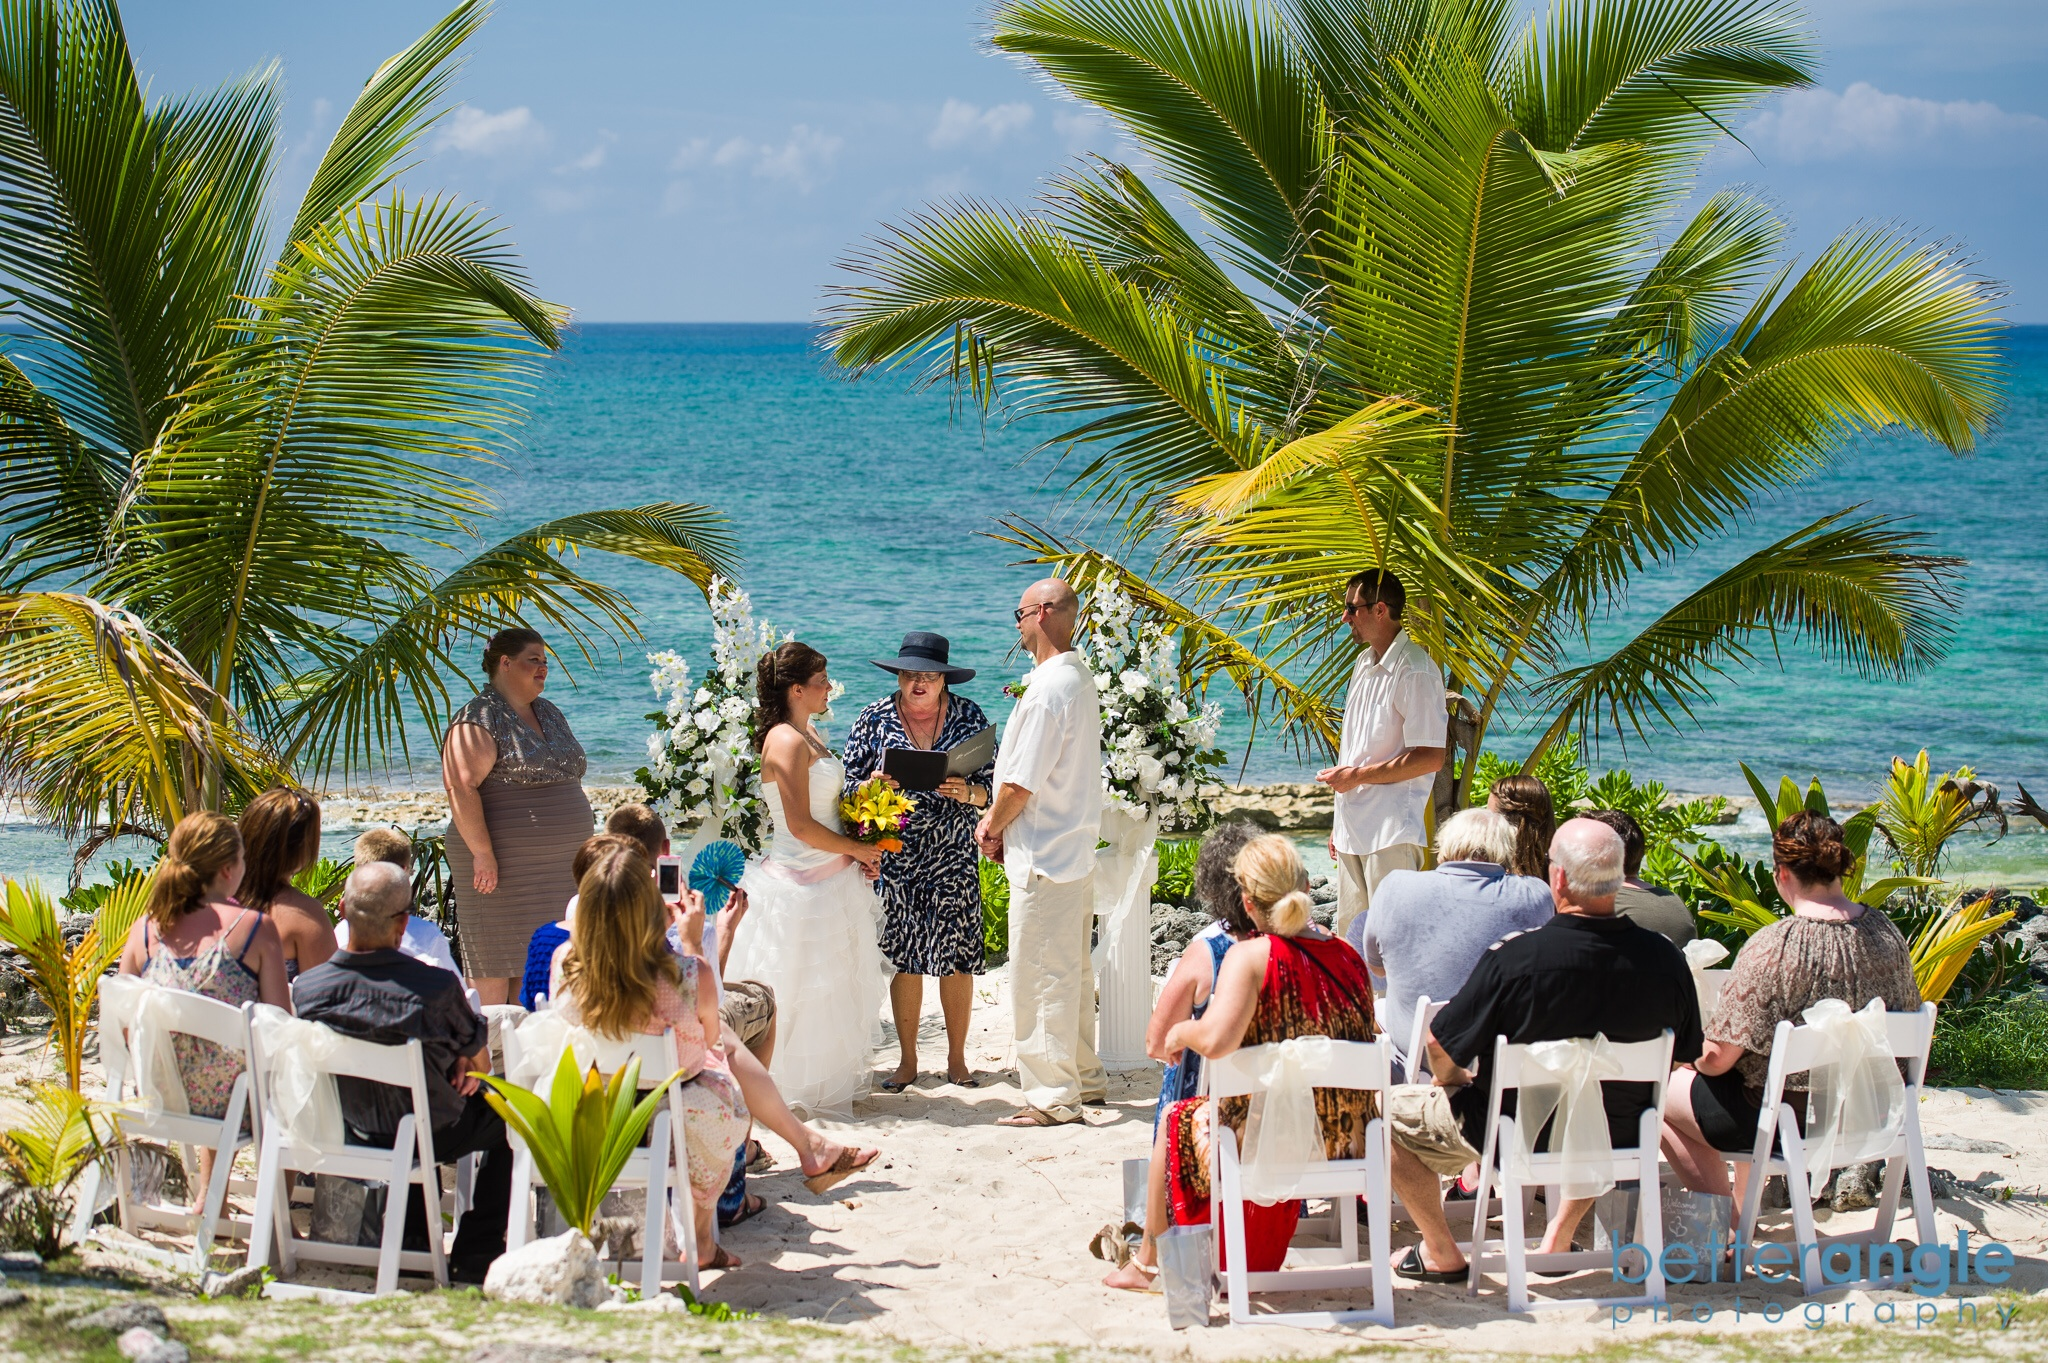 Small beach wedding at Surfer's Beach for a family of cruisers.